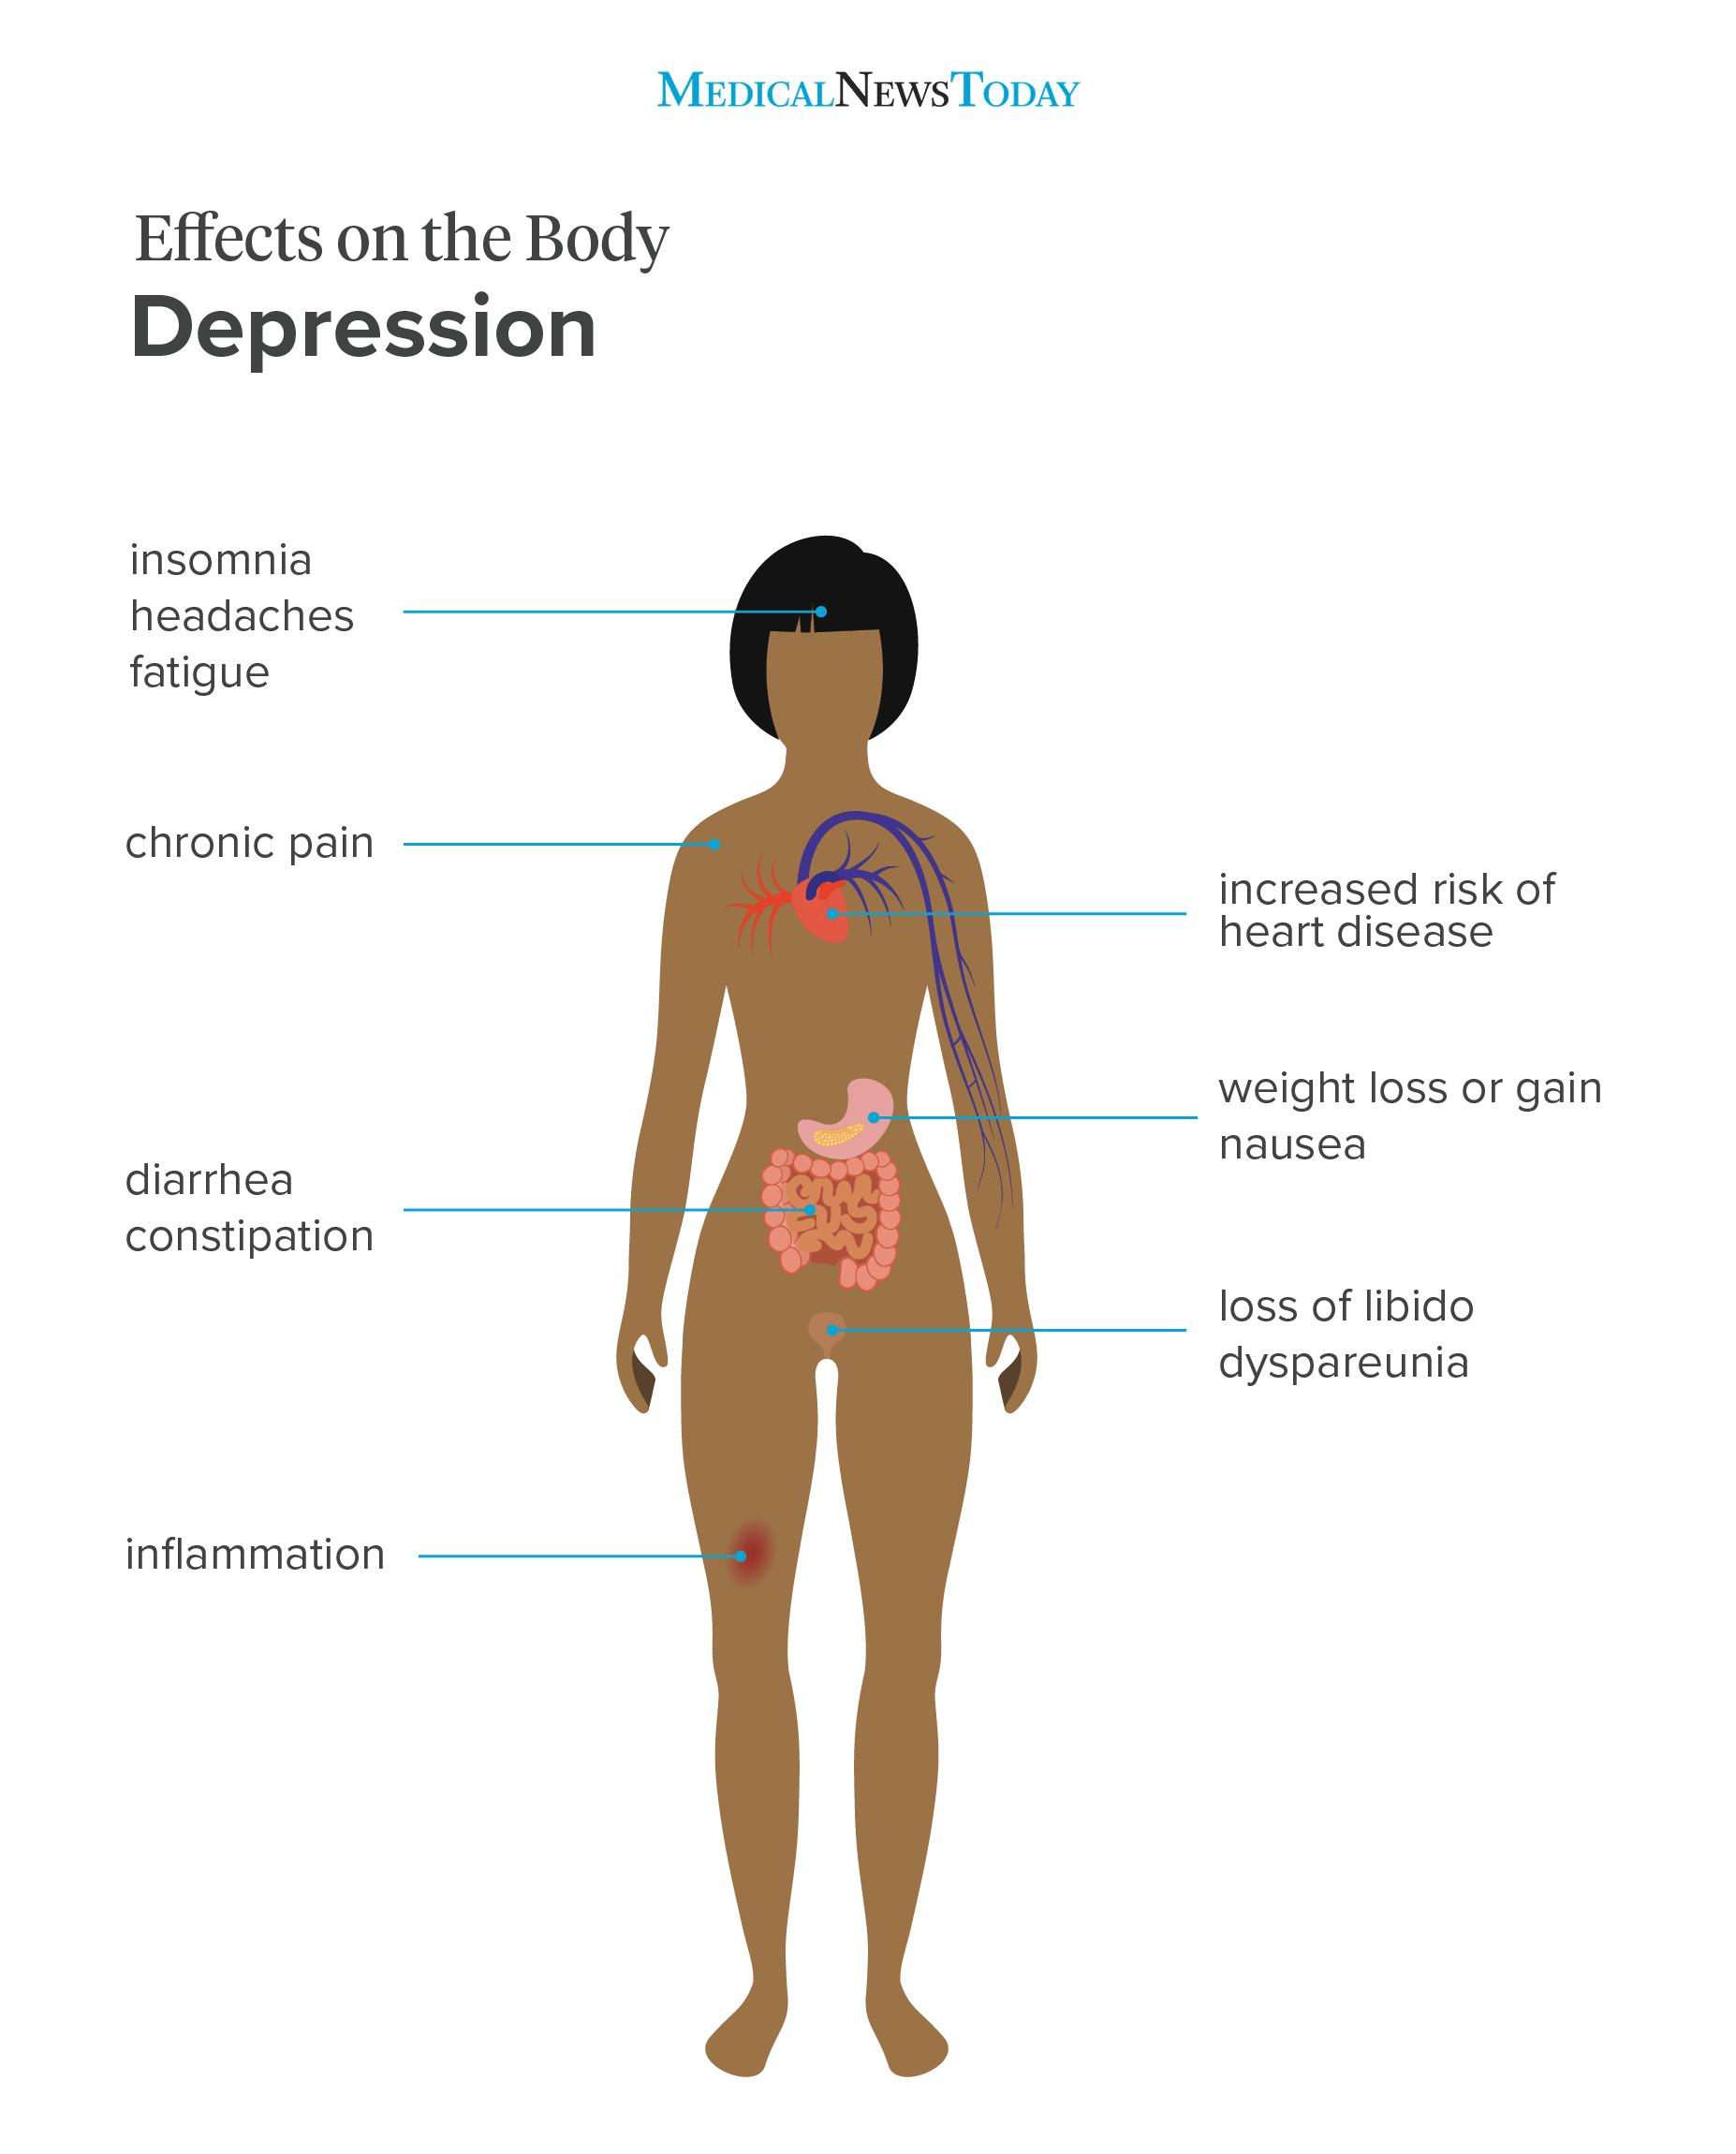 Effects on the body depression